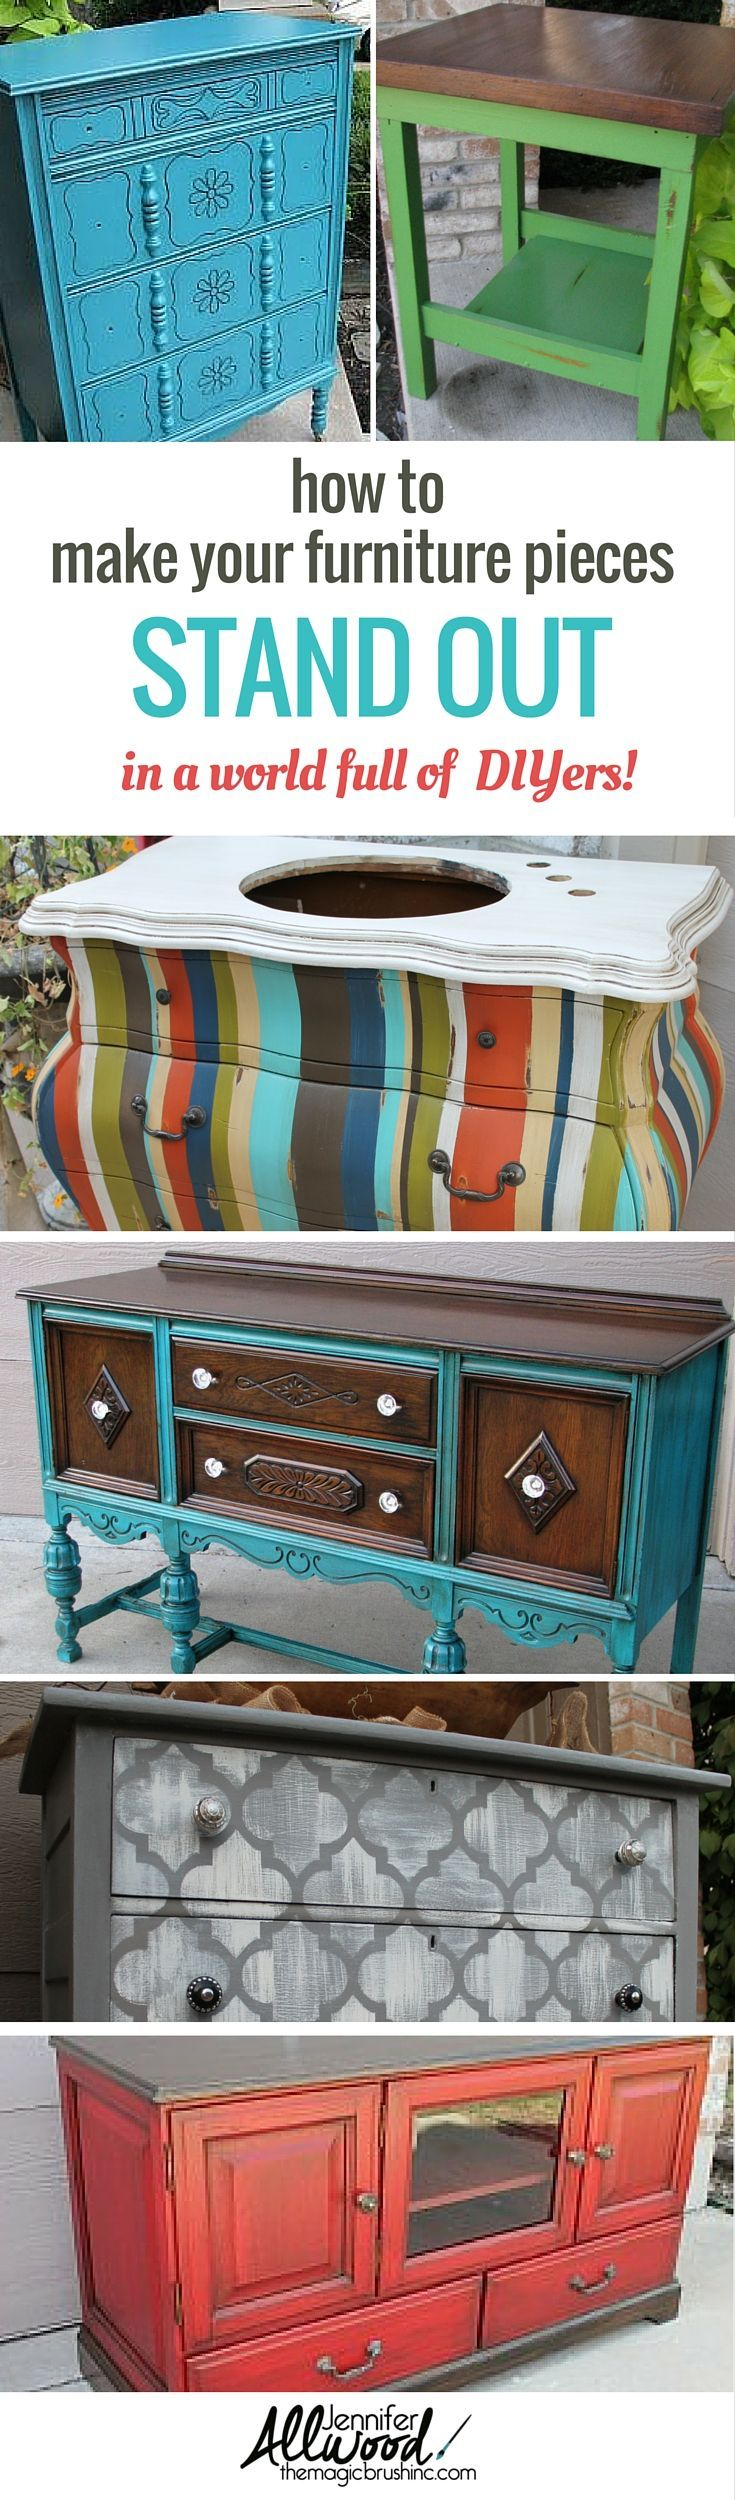 best refresh your home images on pinterest craft ideas